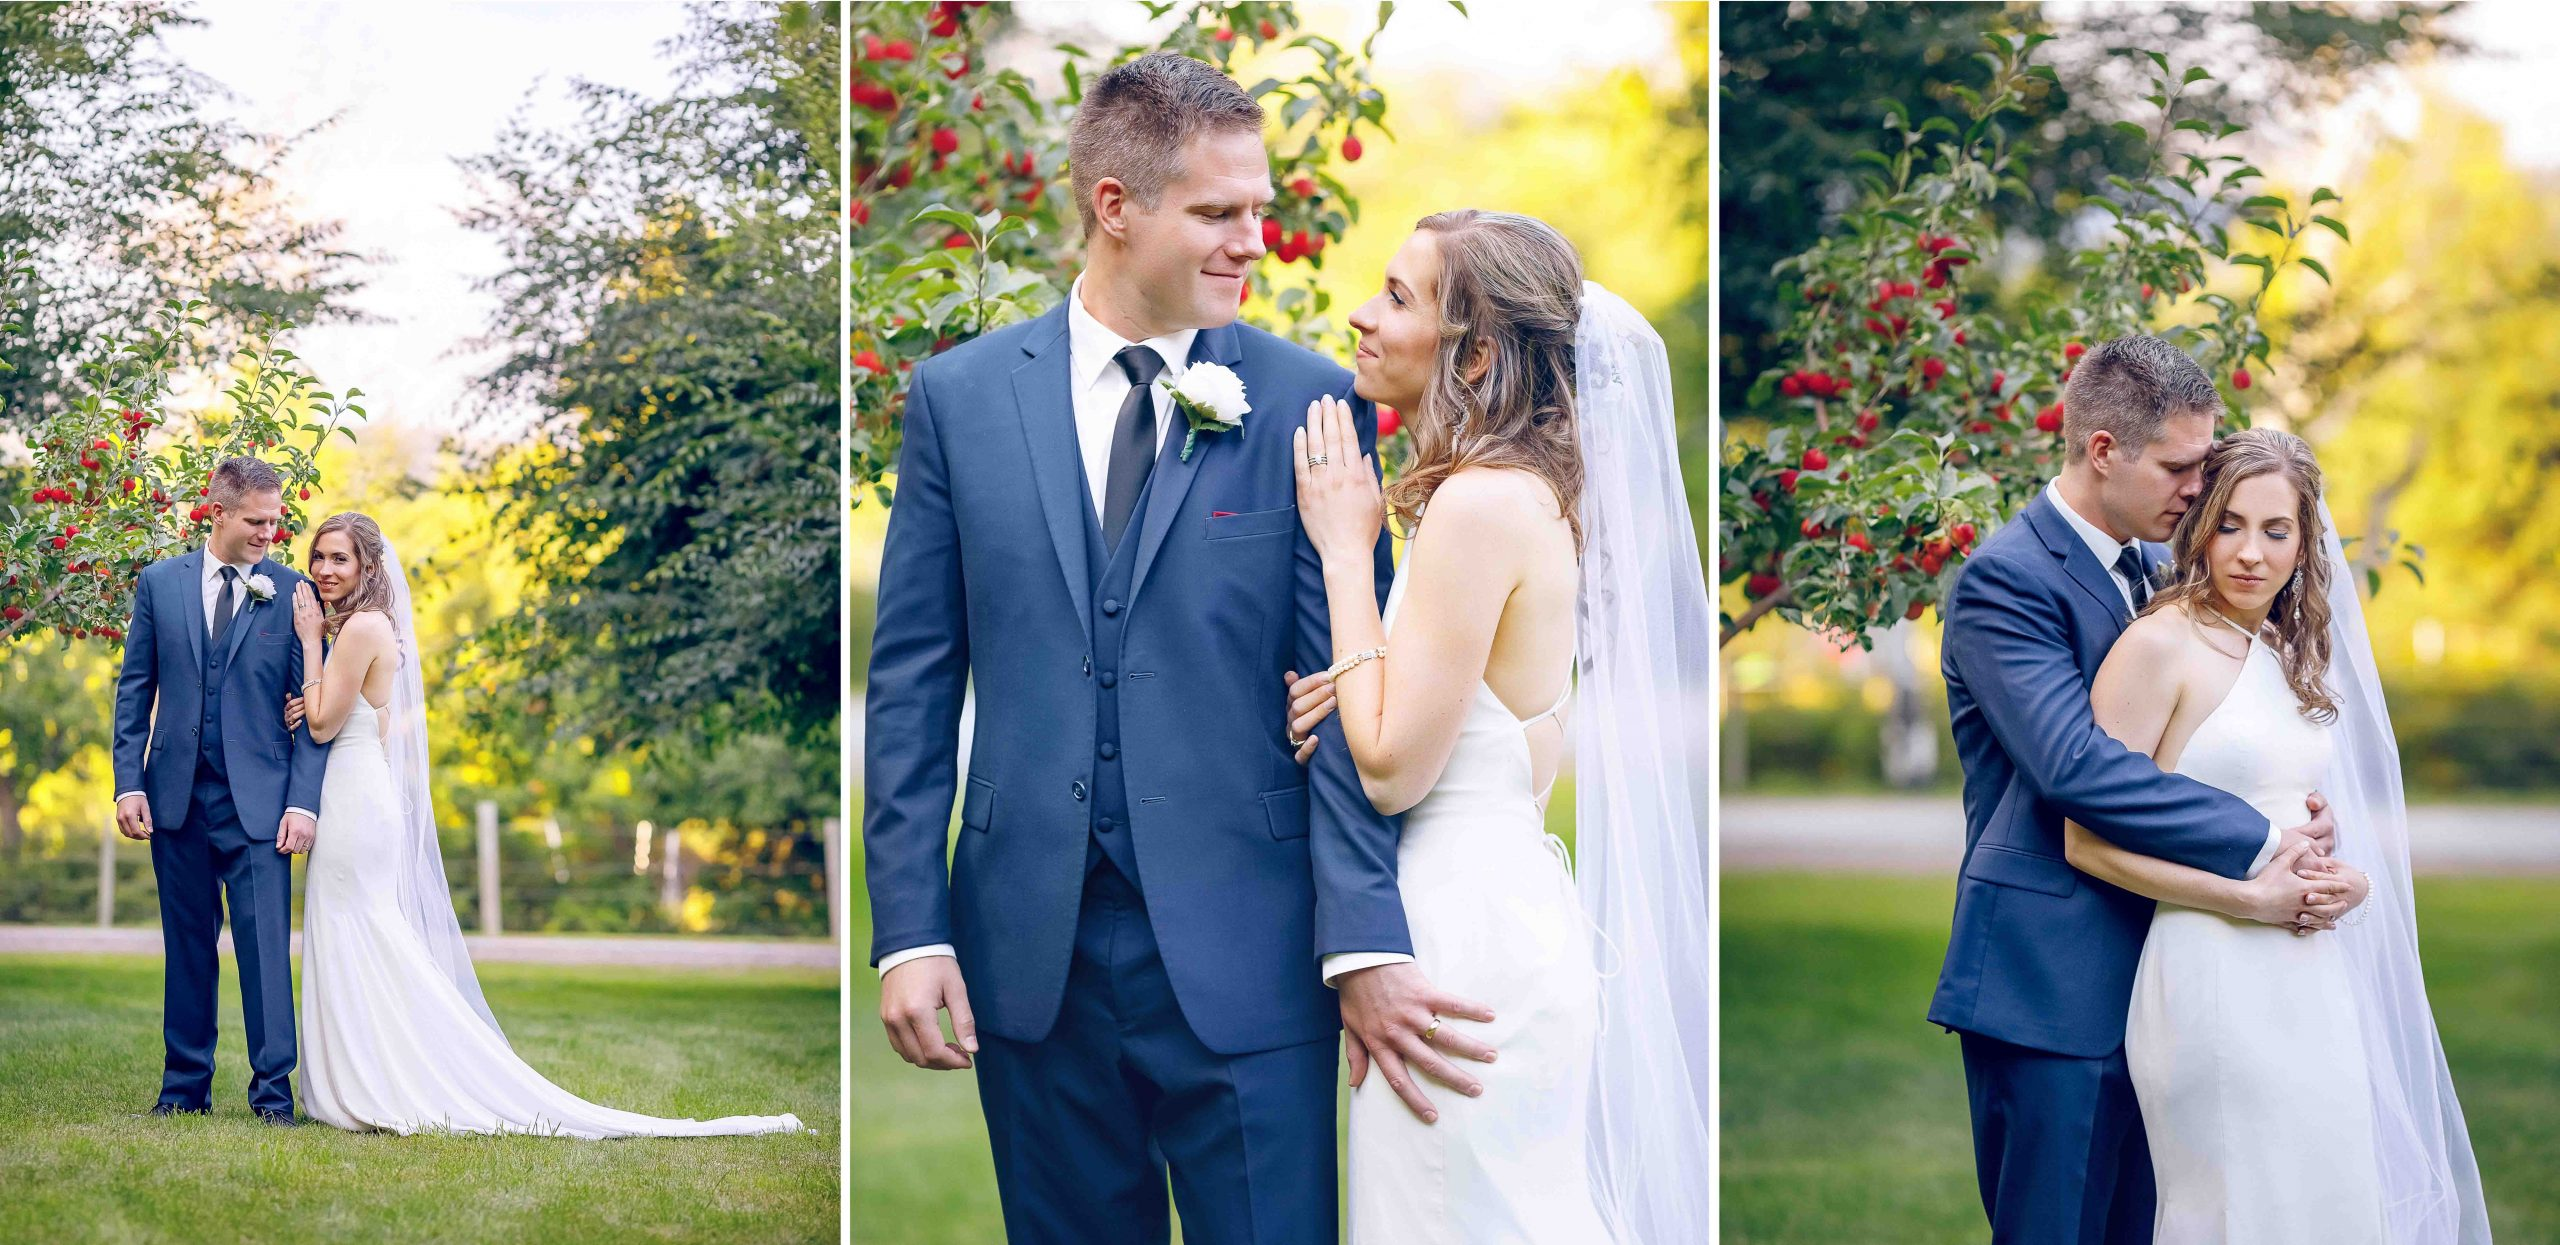 Alberta wedding photographer affordable best